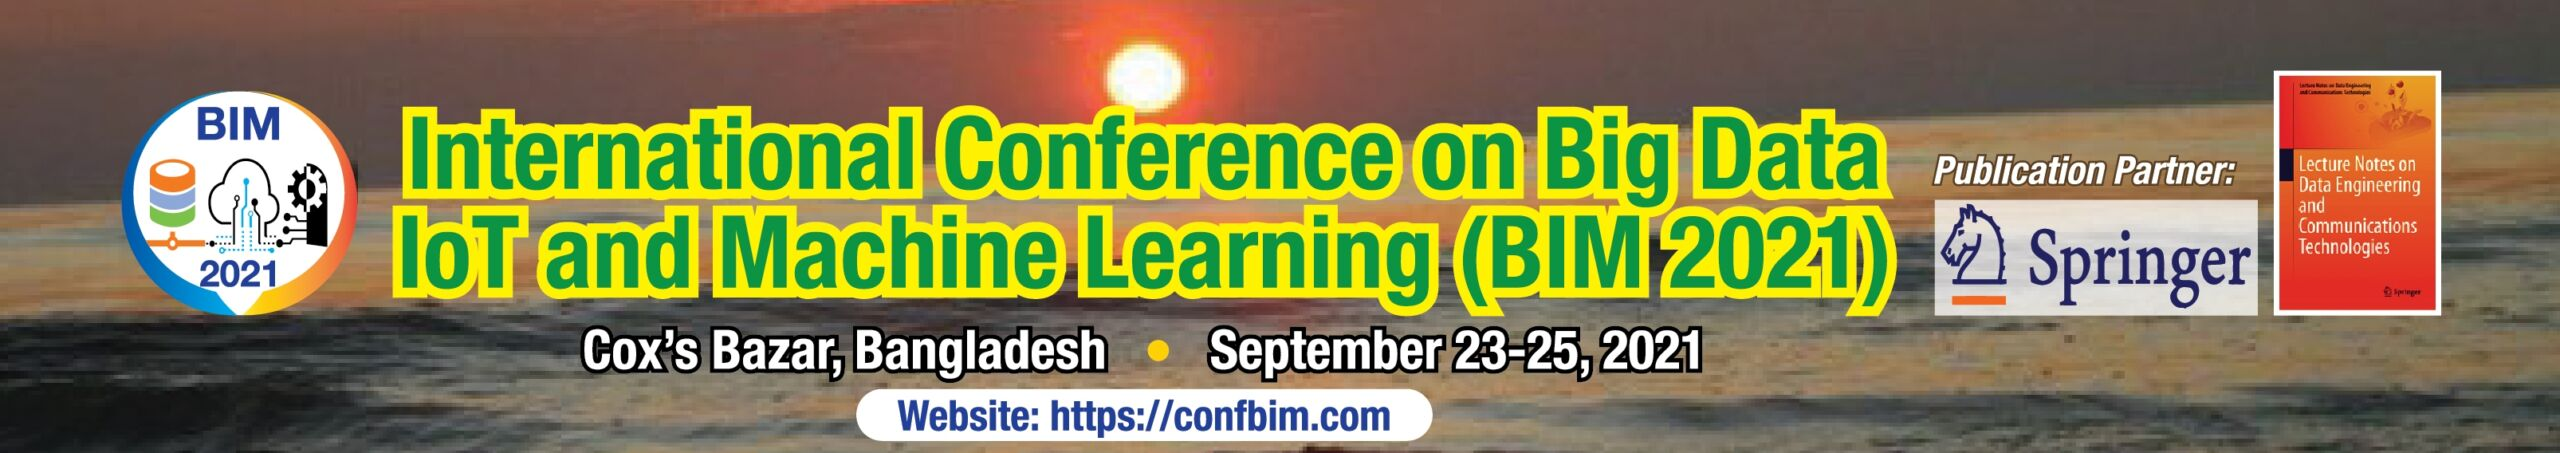 Conference on Big data IoT and Machine learning Logo